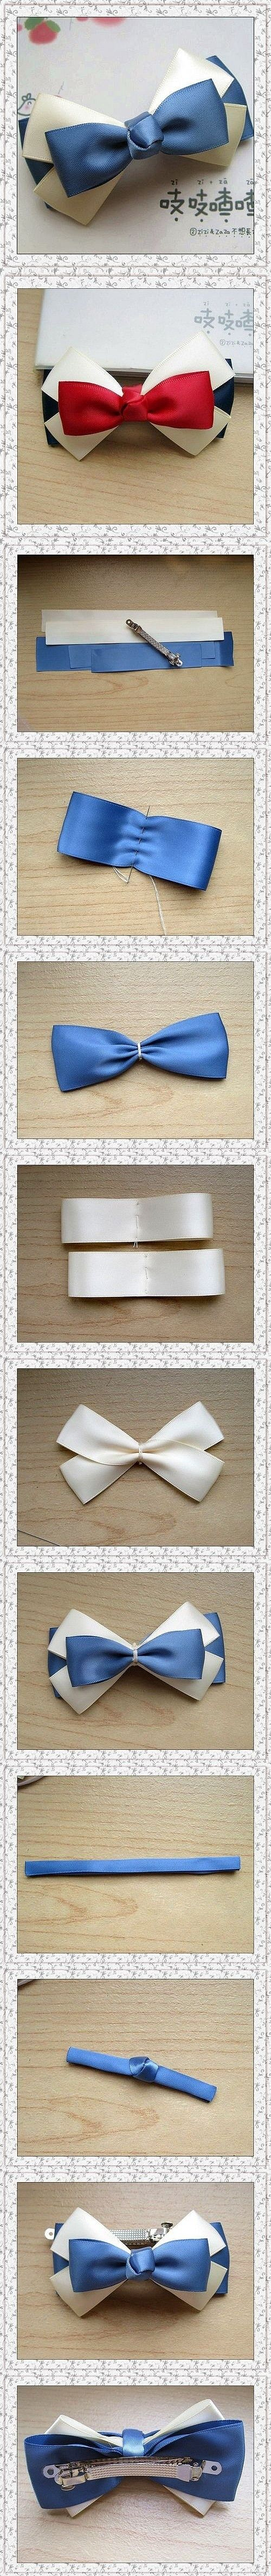 hair bow tie DIY